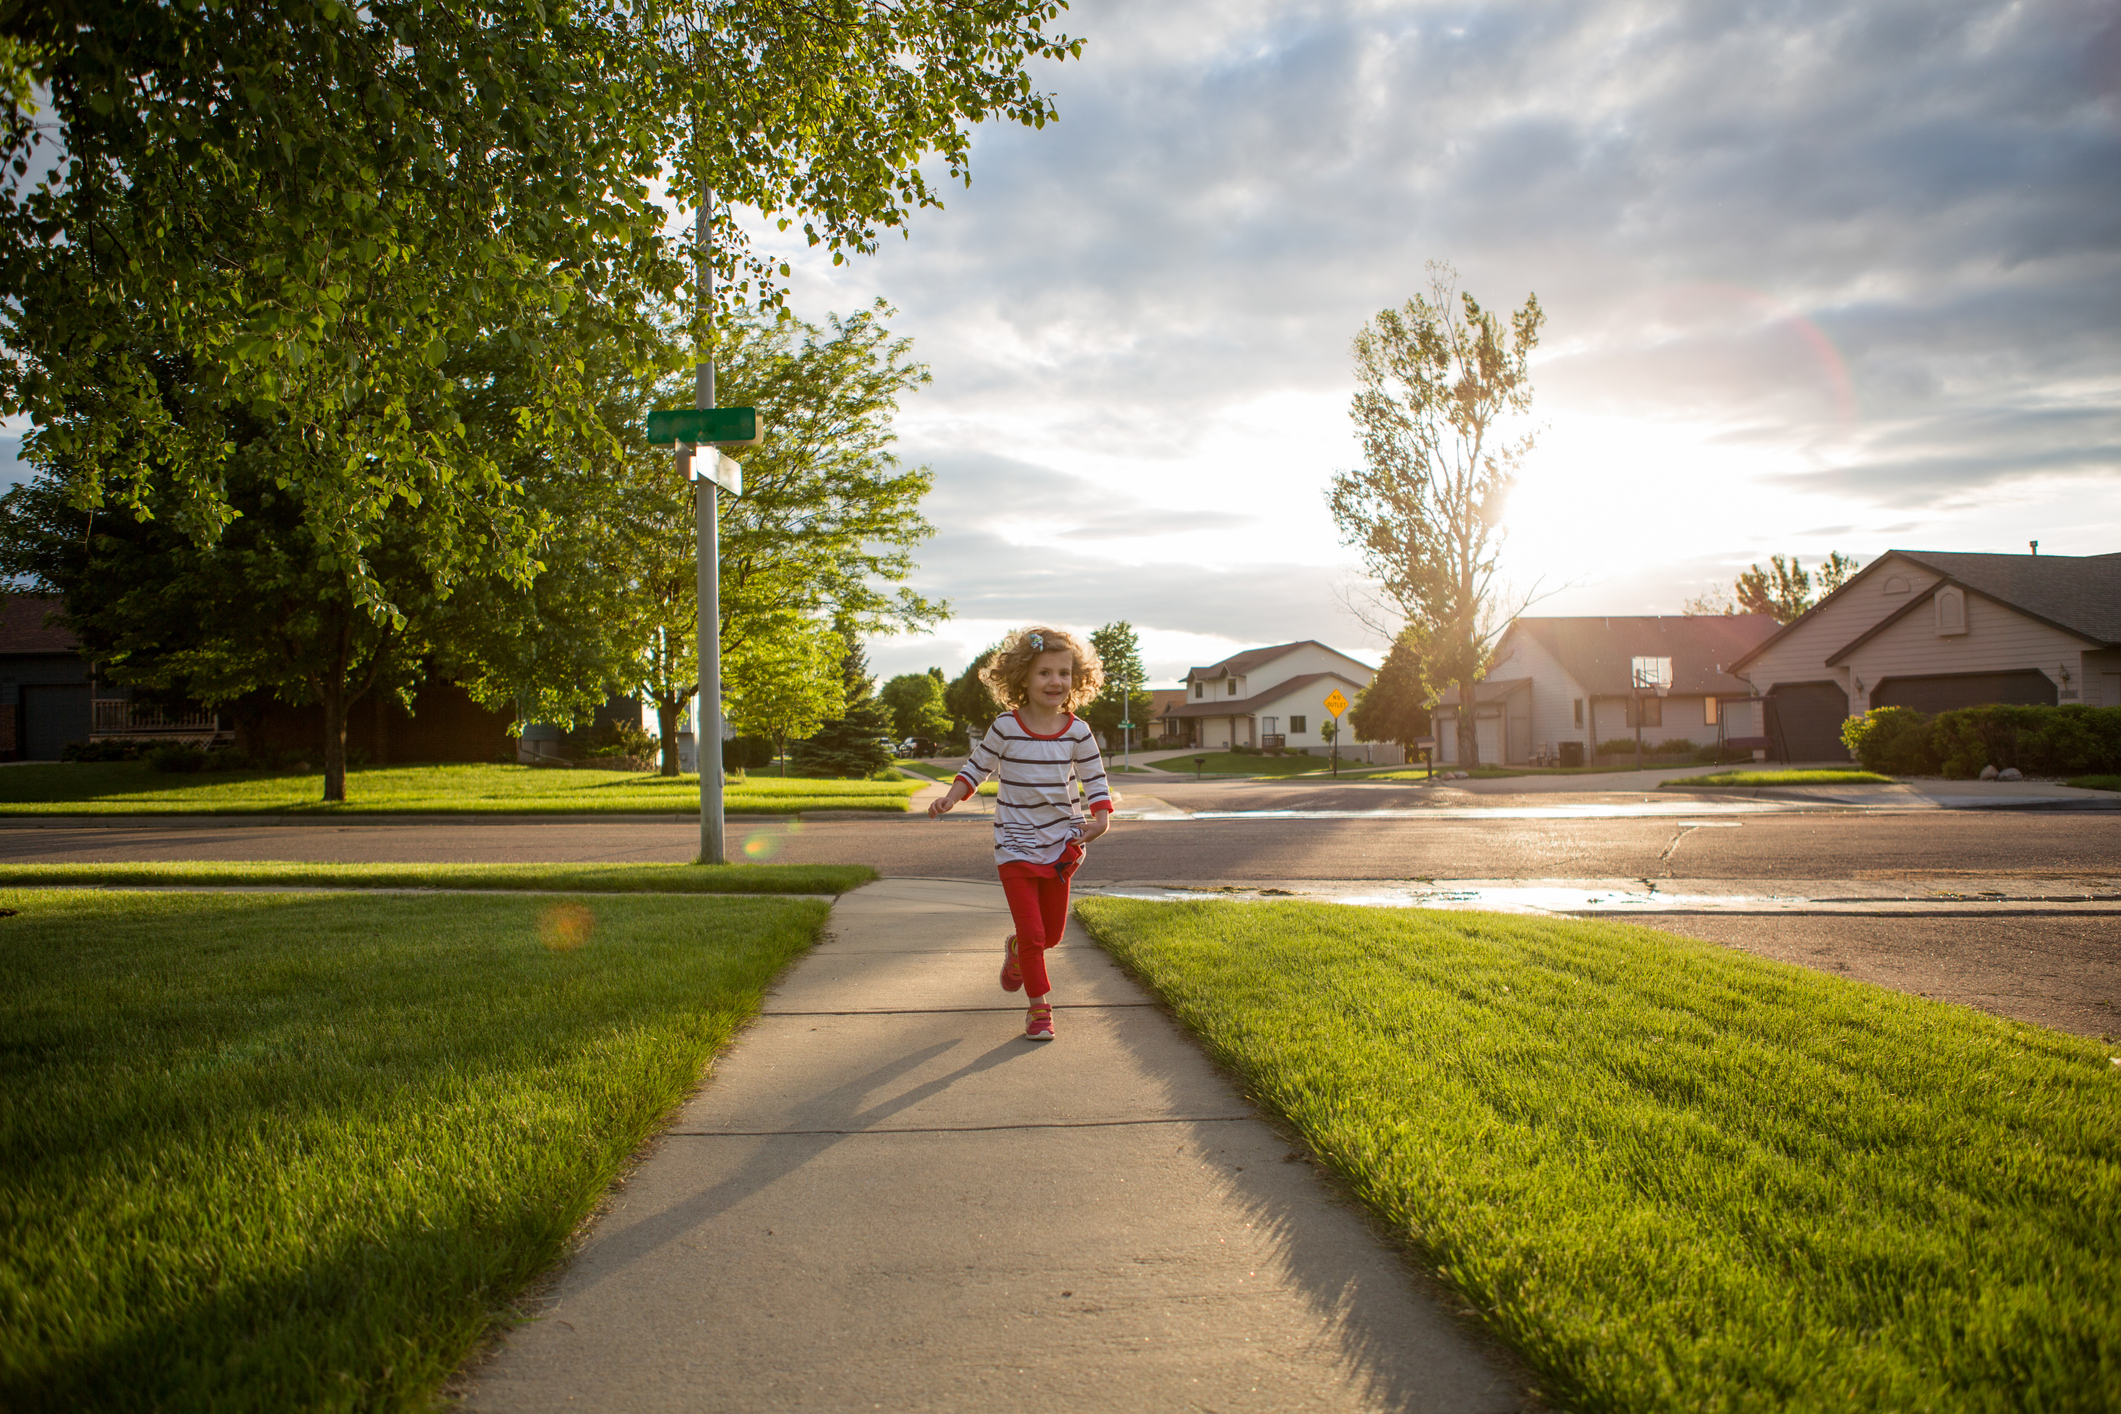 Little girl runs down a sidewalk in a neighborhood on a sunny summer evening.